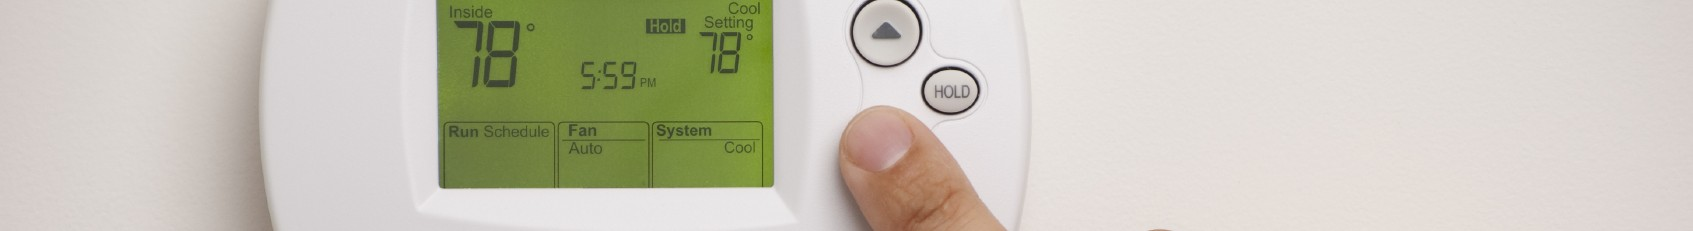 Digital Thermostat with a male hand, set to 78 degrees Fahrenheit. Saved with clipping path for thermostat and hand combined.